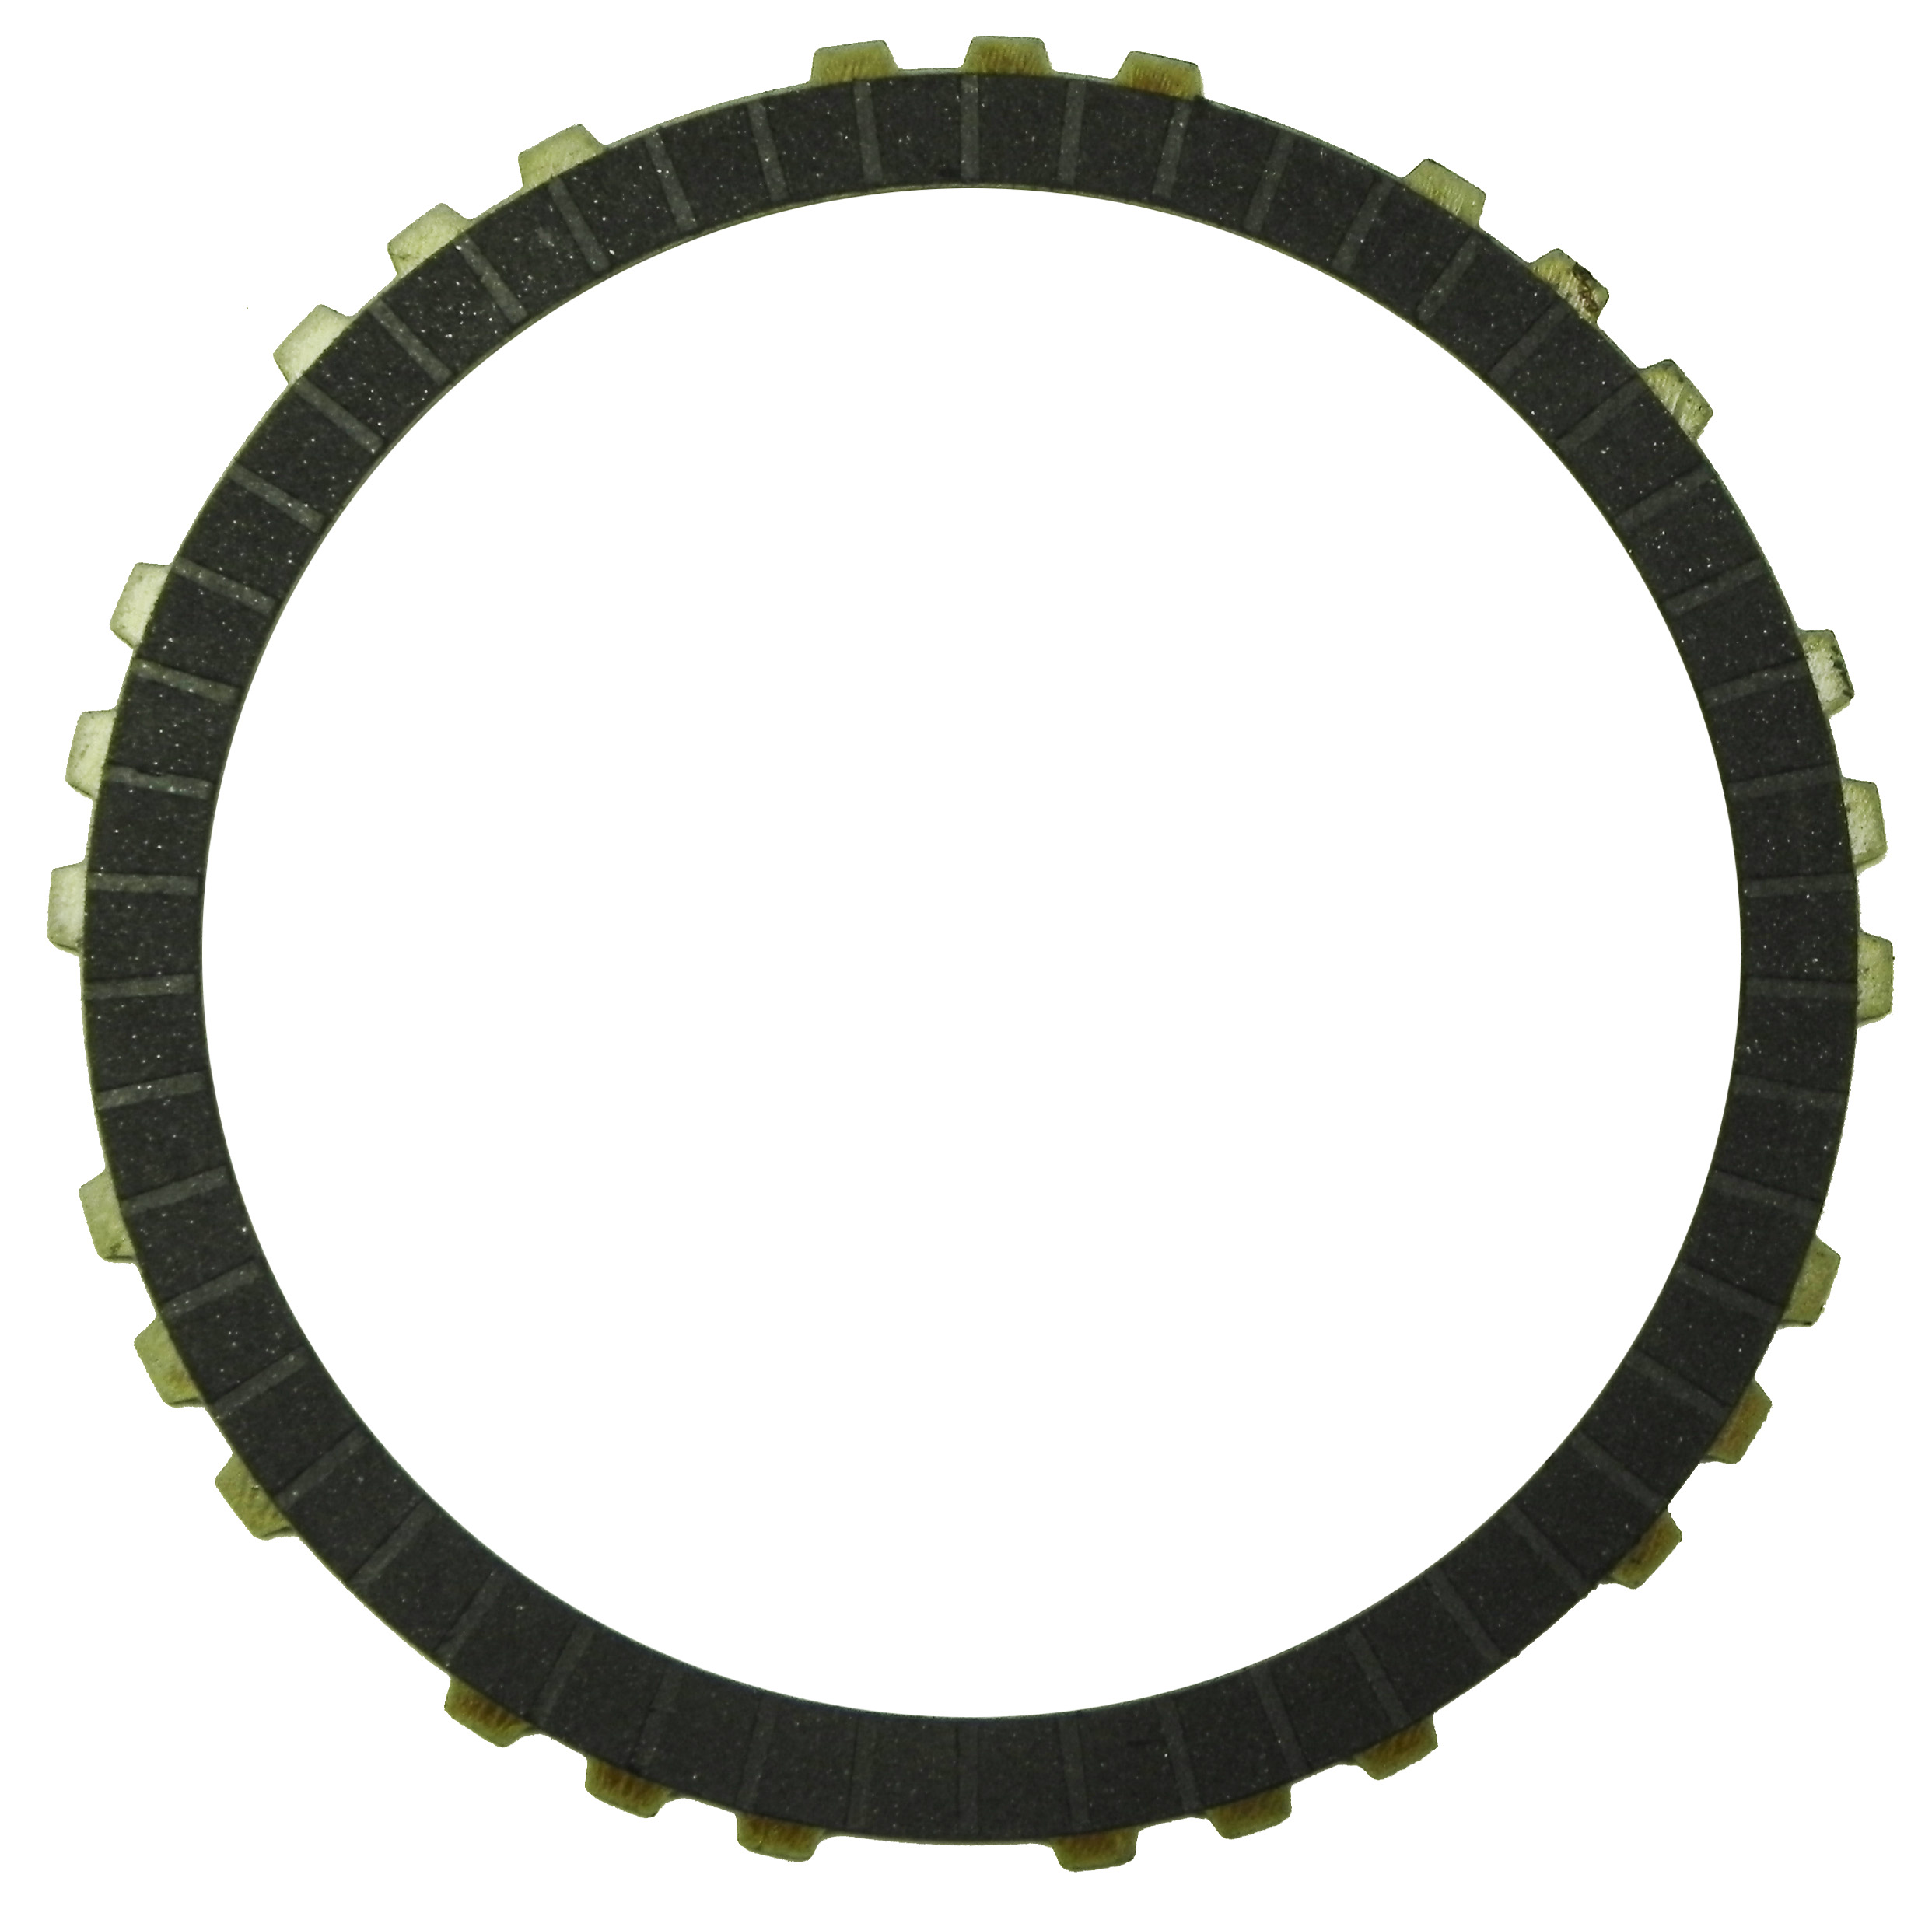 R560640 | 2009-ON Friction Clutch Plate High Energy 3, 5, Reverse Single Sided, OD Spline Bottom High Energy